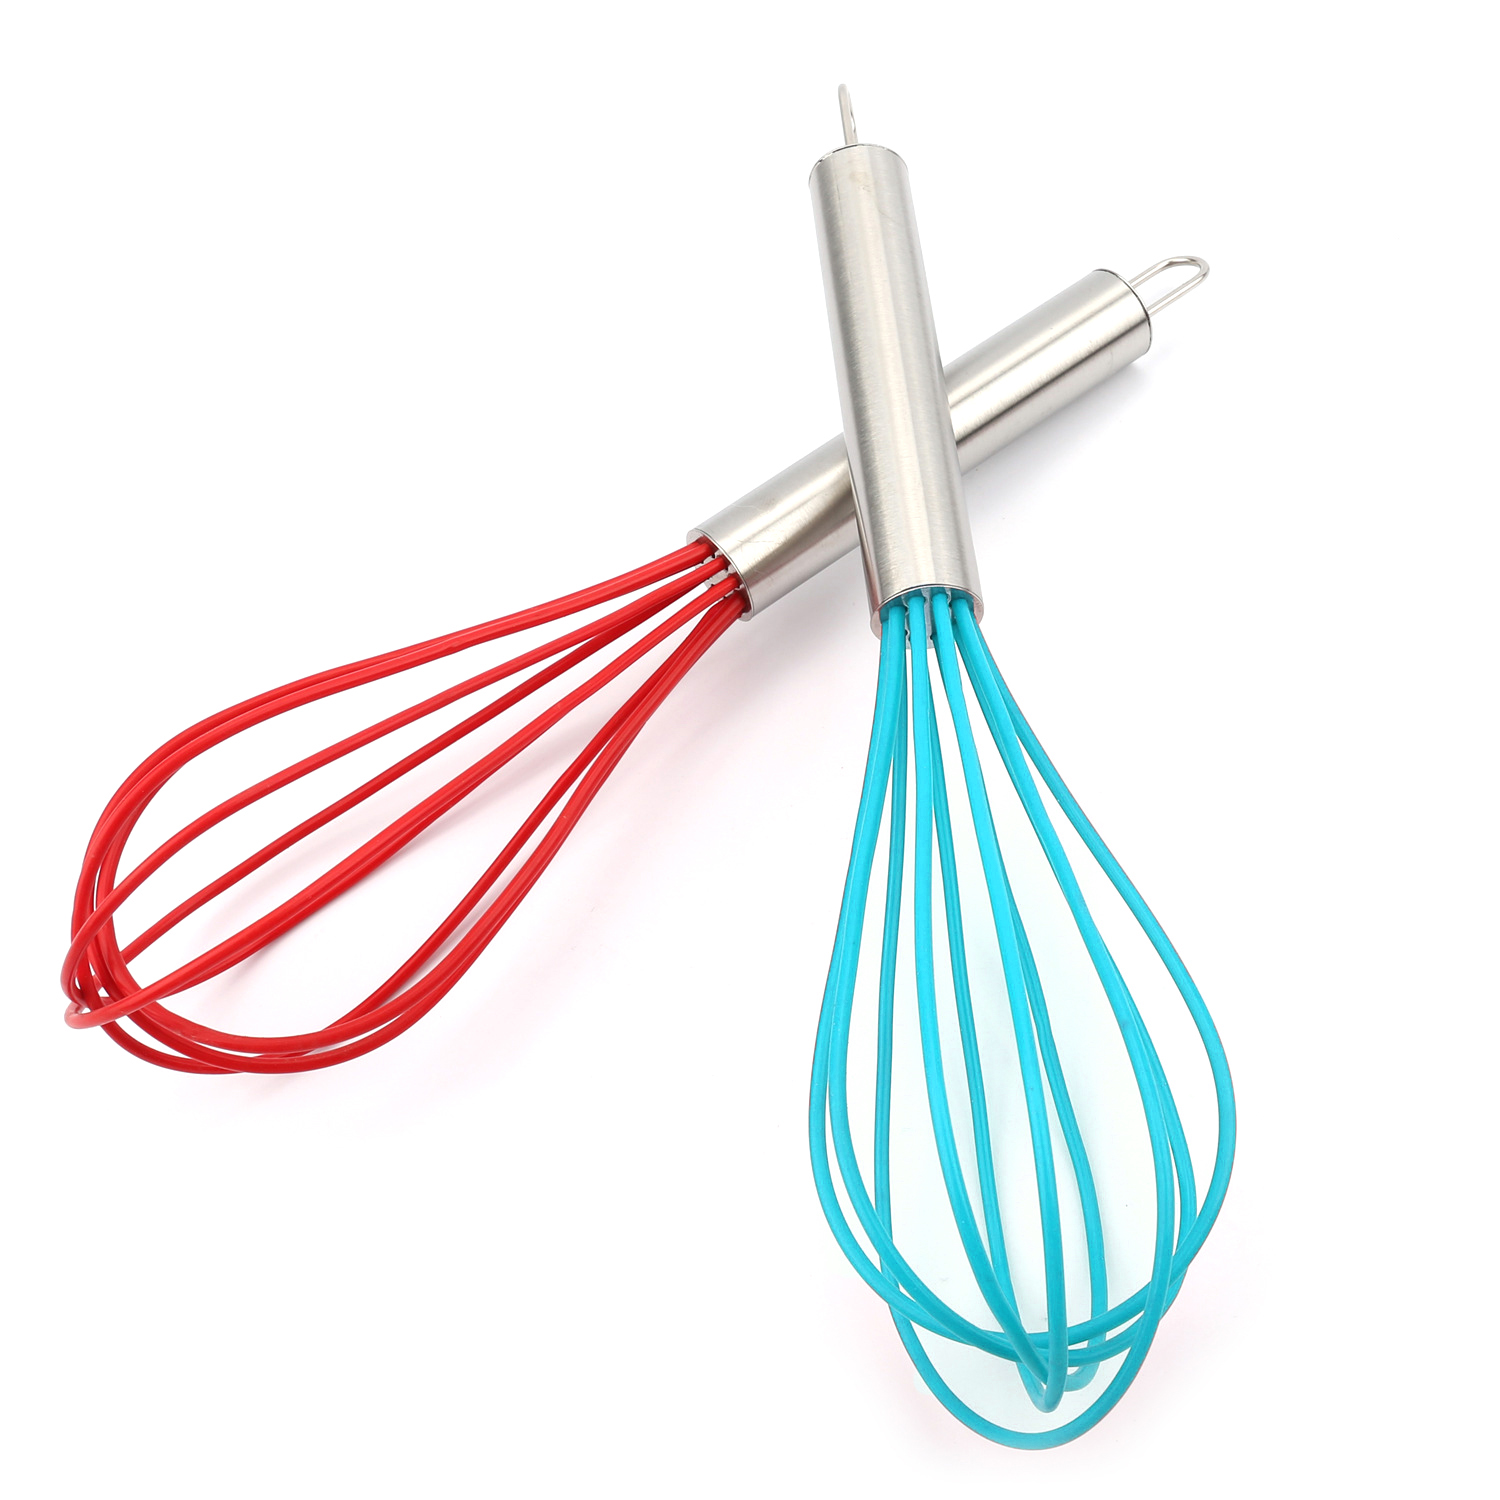 Food Grade Silicone Whisk Mixer Durable Egg Beater <font><b>Kitchen</b></font> Cooking Egg Beaters <font><b>Kitchen</b></font> <font><b>Tools</b></font> Hand Egg Mixer Cooking Foamer 25cm image